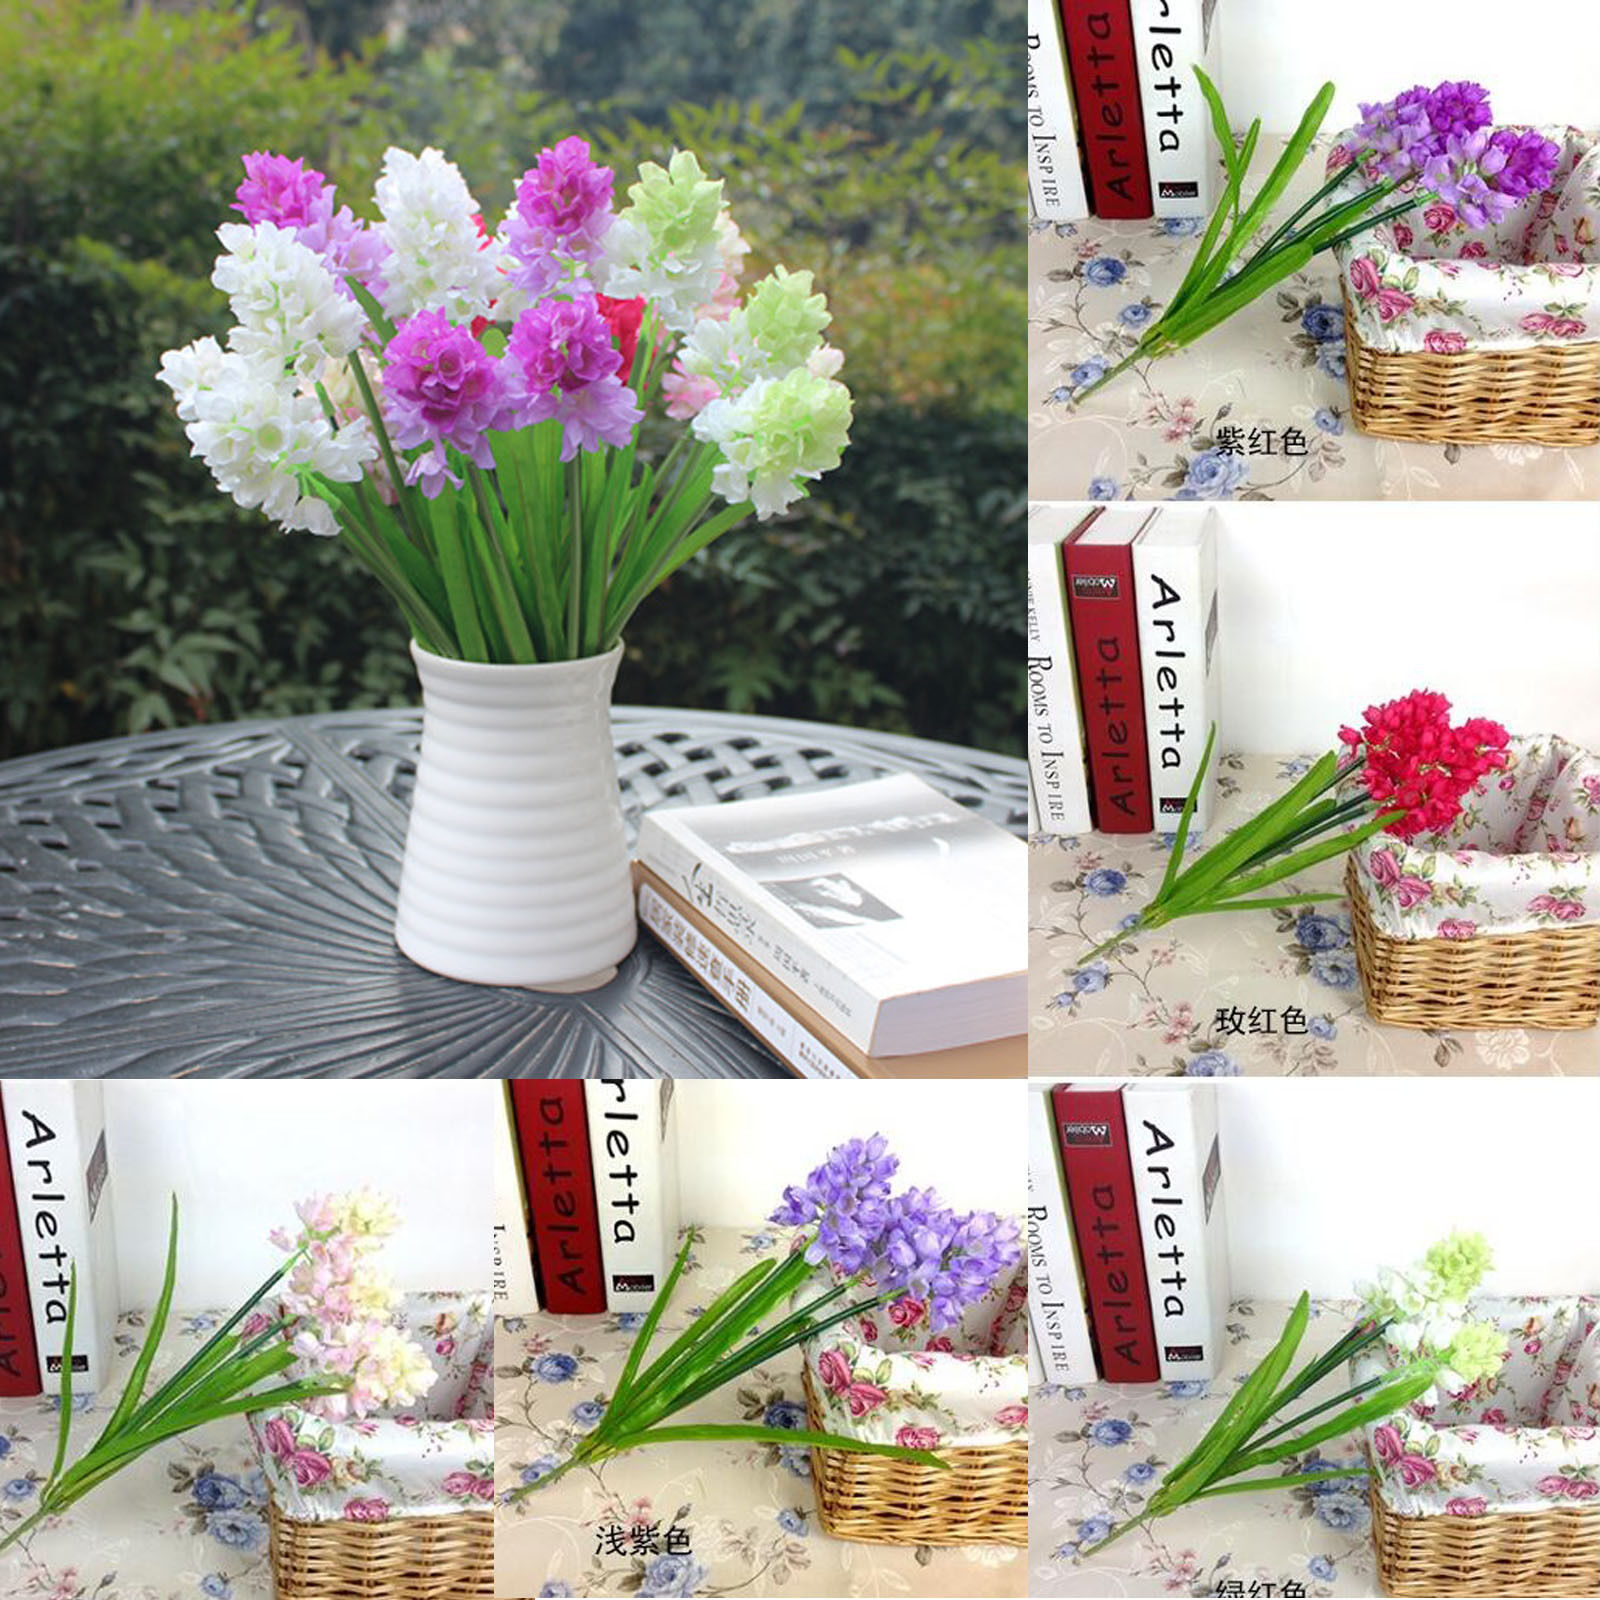 3 flower heads artificial silk hyacinth leaf wedding party floral bouquet decor - Flowers For Home Decor